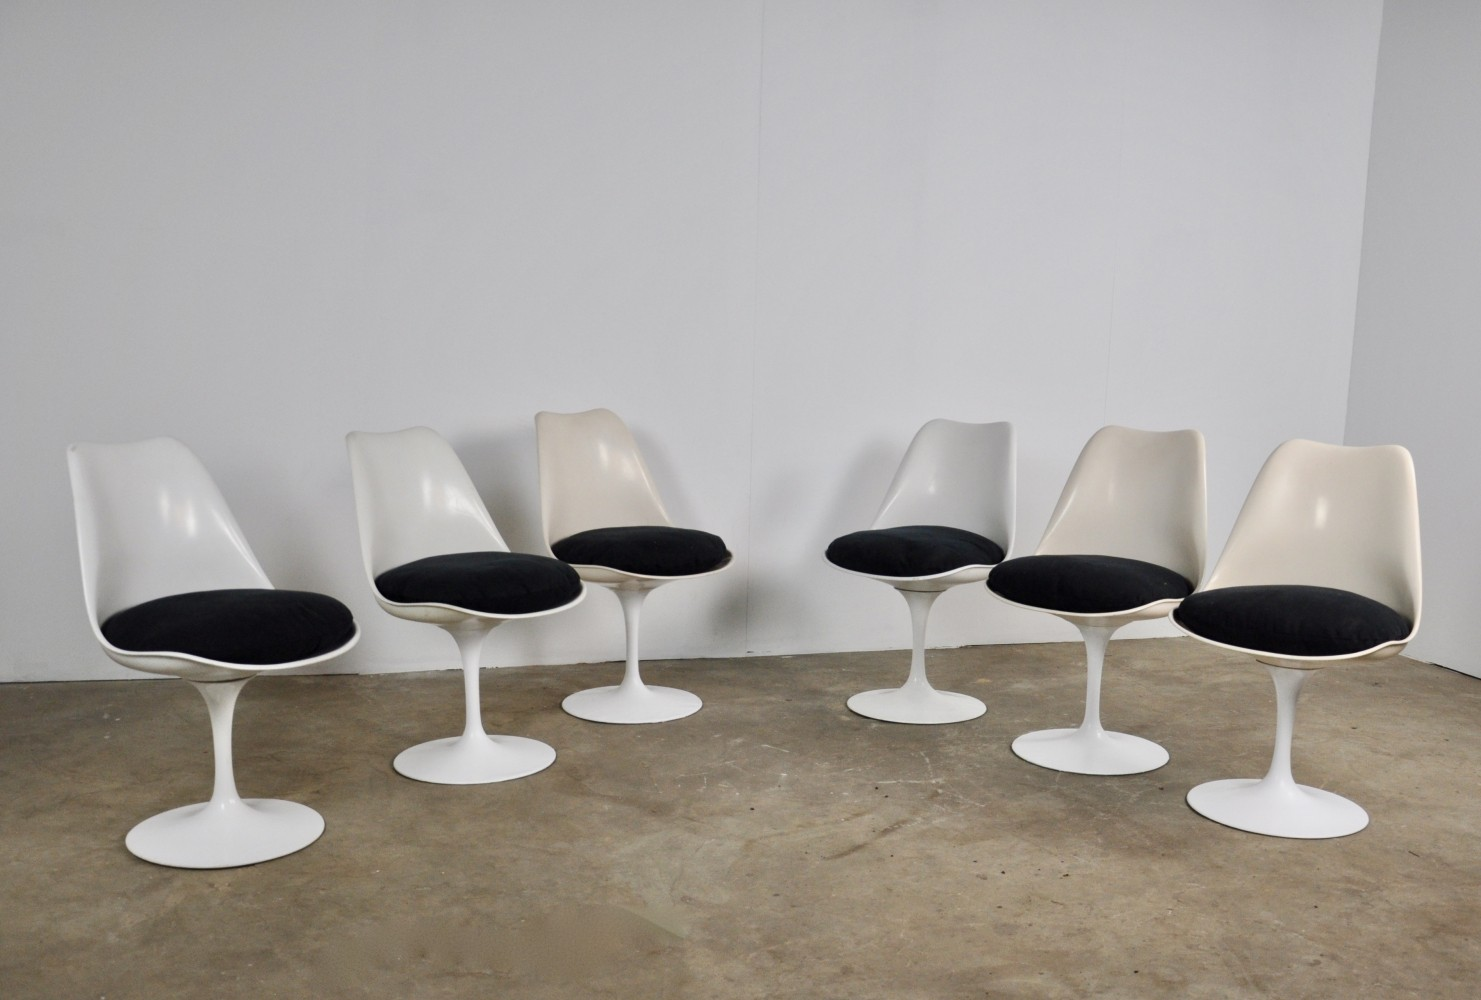 Set of 6 Dining Chairs by Eero Saarinen for Knoll International, 1960s